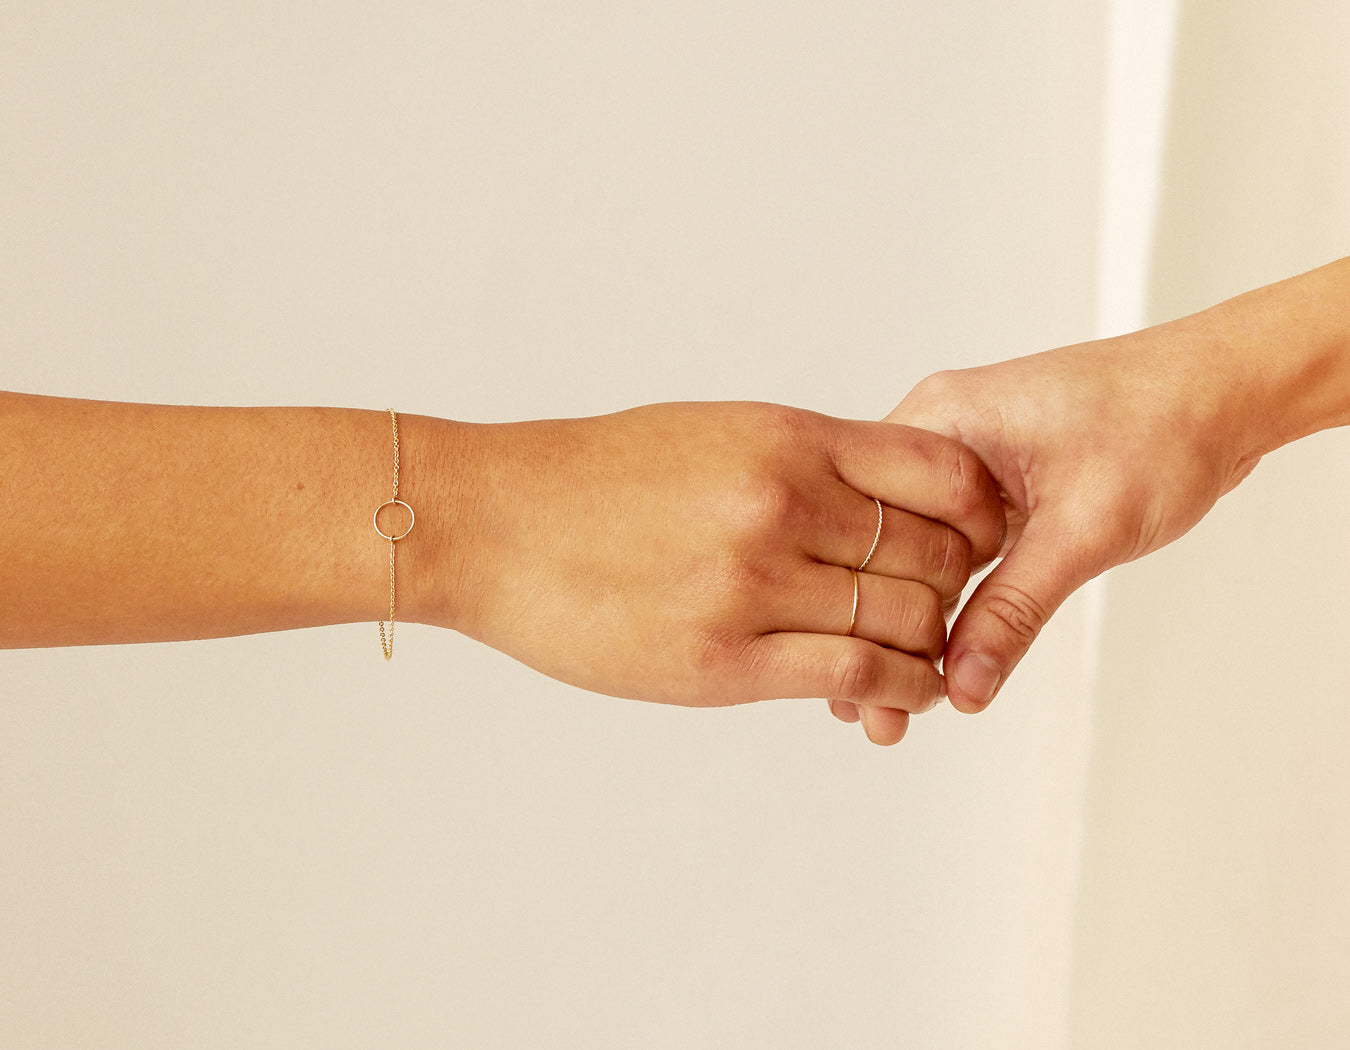 Woman modelling dainty geometric 14k solid gold Circle Bracelet by Vrai & Oro minimalist jewelry